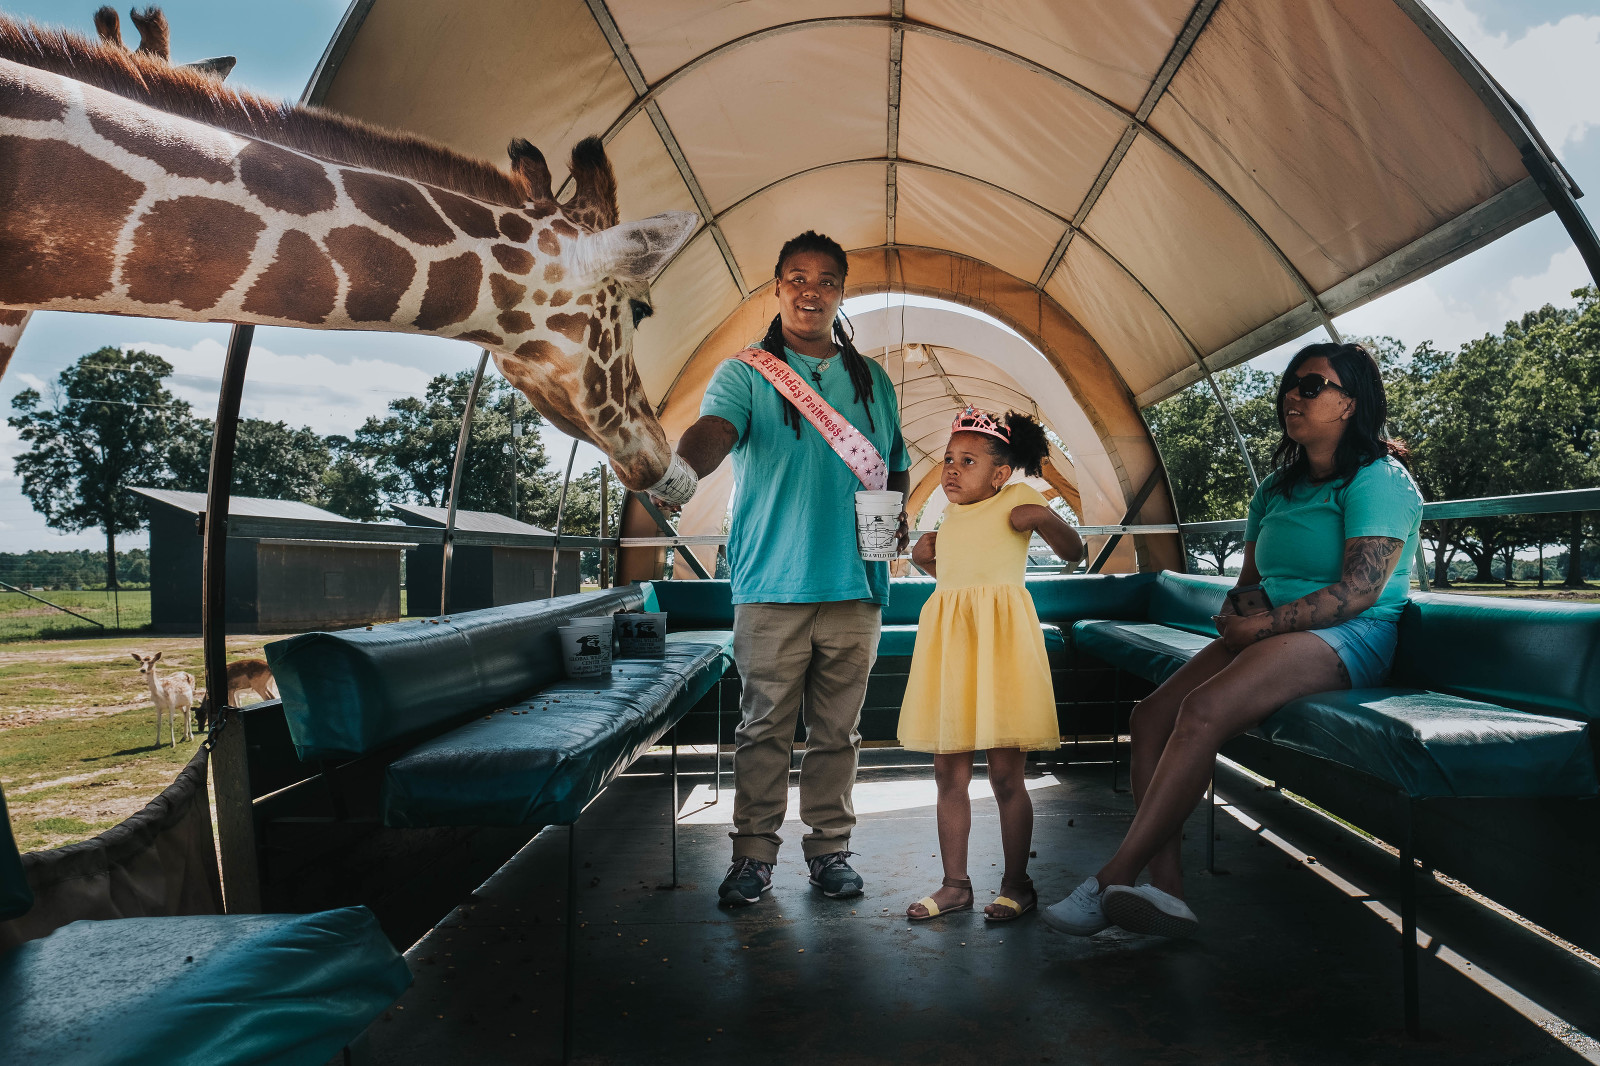 Same sex couple, women of colour with young child feeding giraffes at a safari park